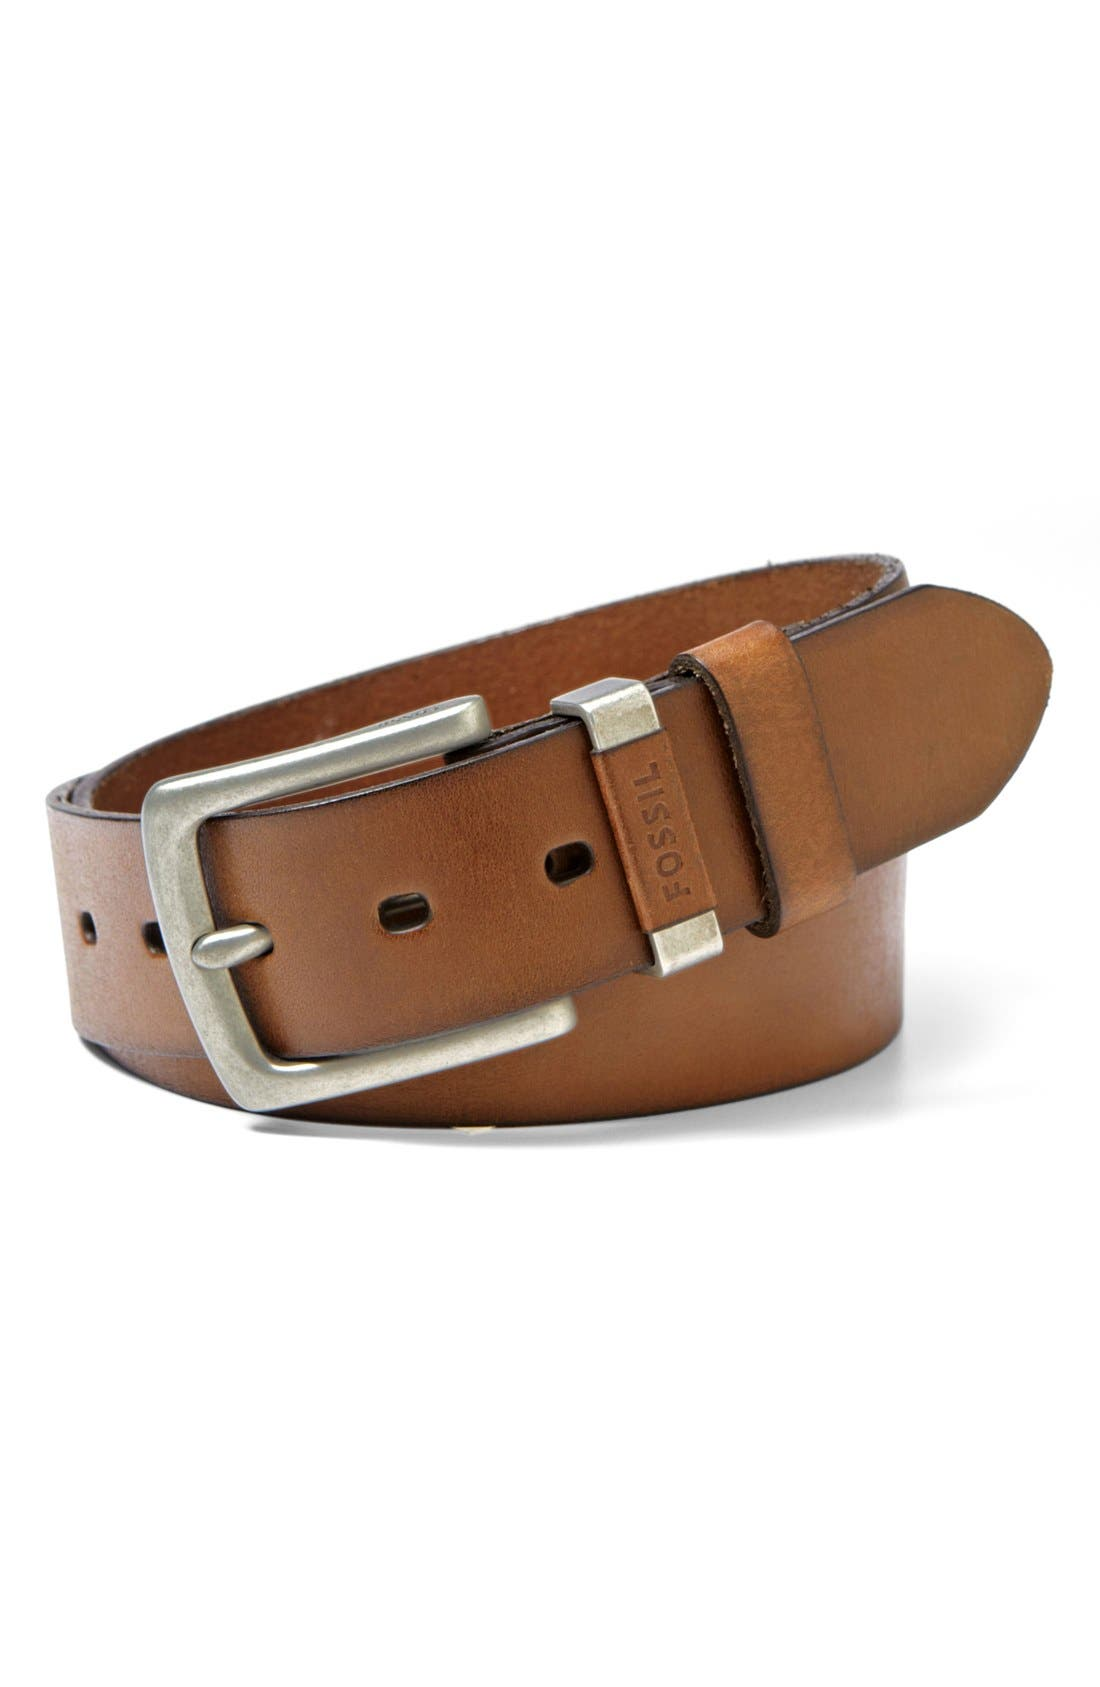 Alternate Image 1 Selected - Fossil 'Jay' Leather Belt